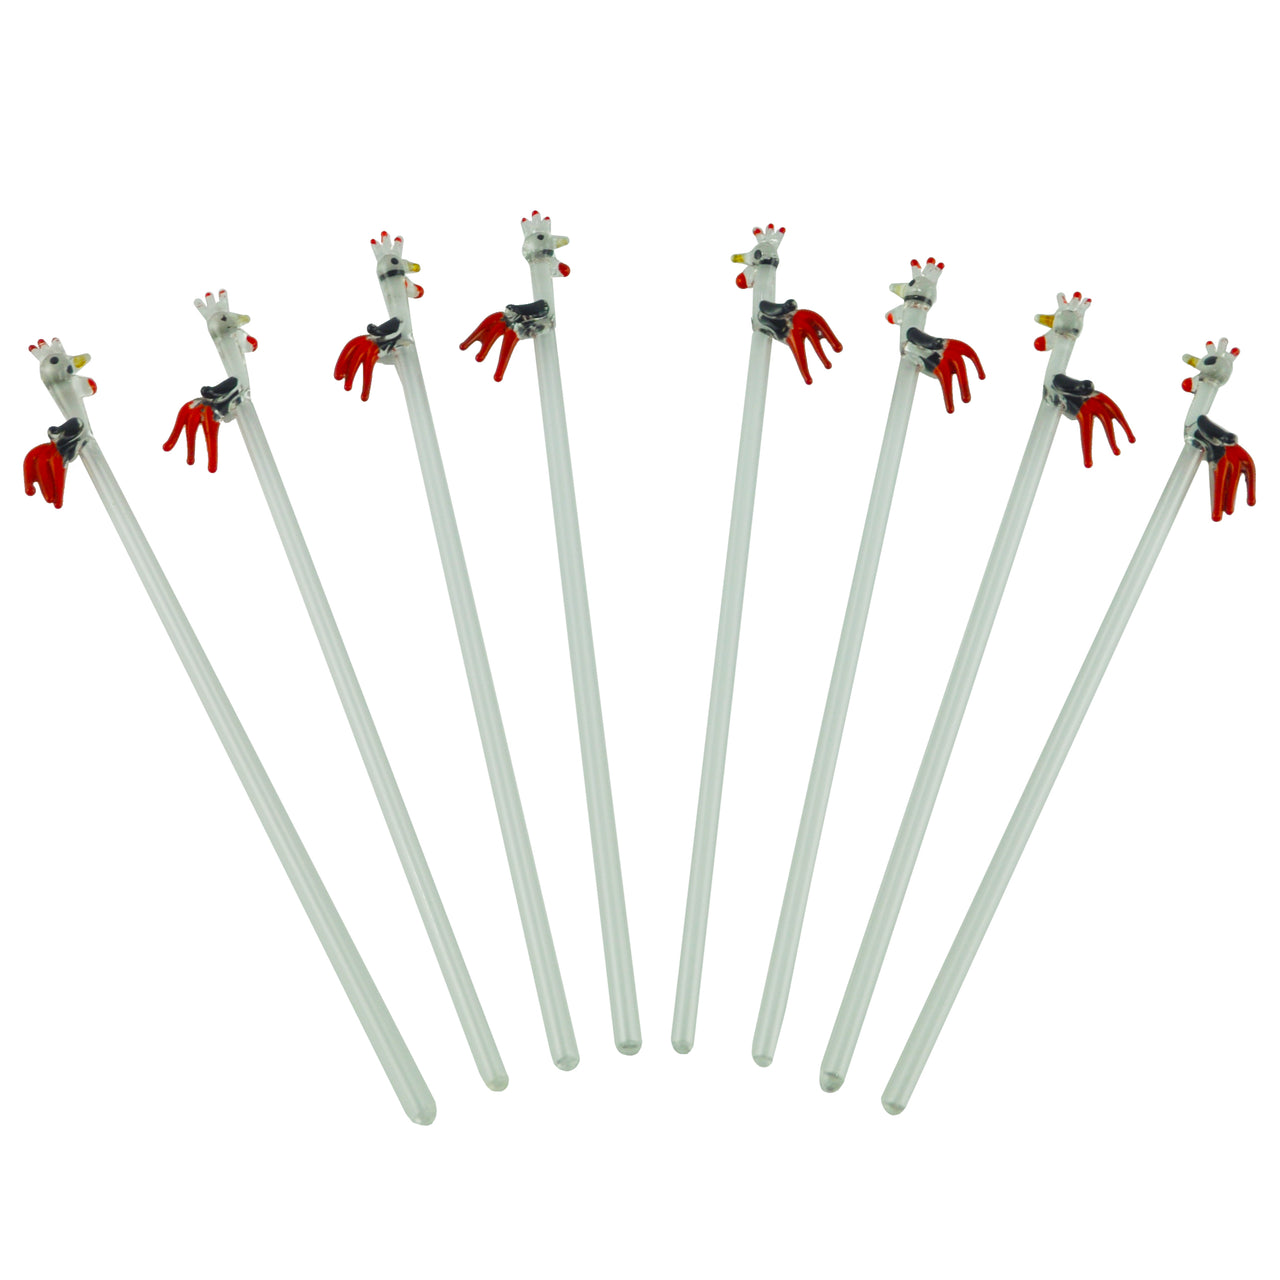 Vintage Rooster Tip Glass Stir Swizzle Sticks, The Hour Shop